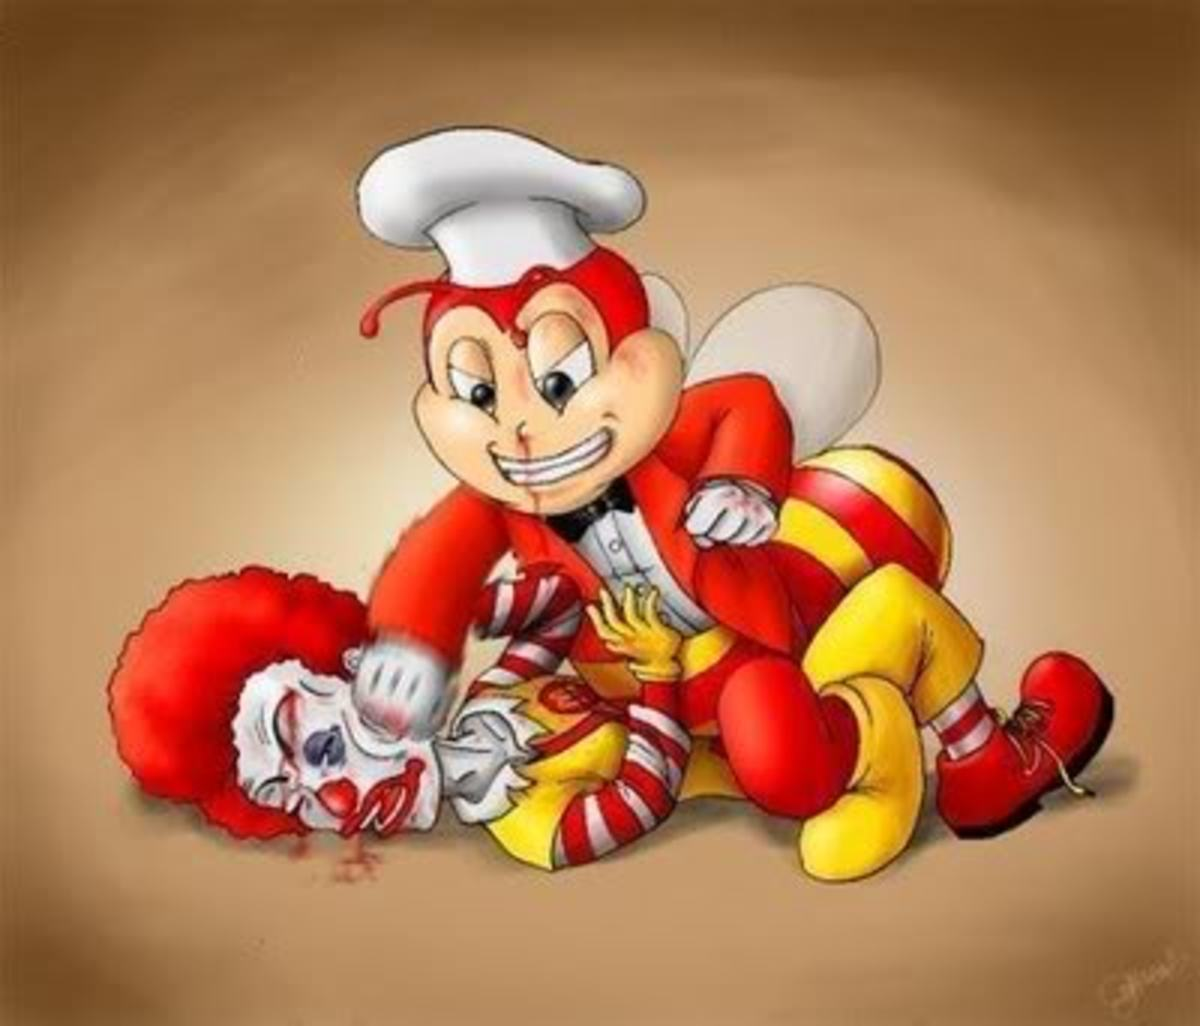 Mc Donalds vs Jollibee the top franchise business in the Philippines